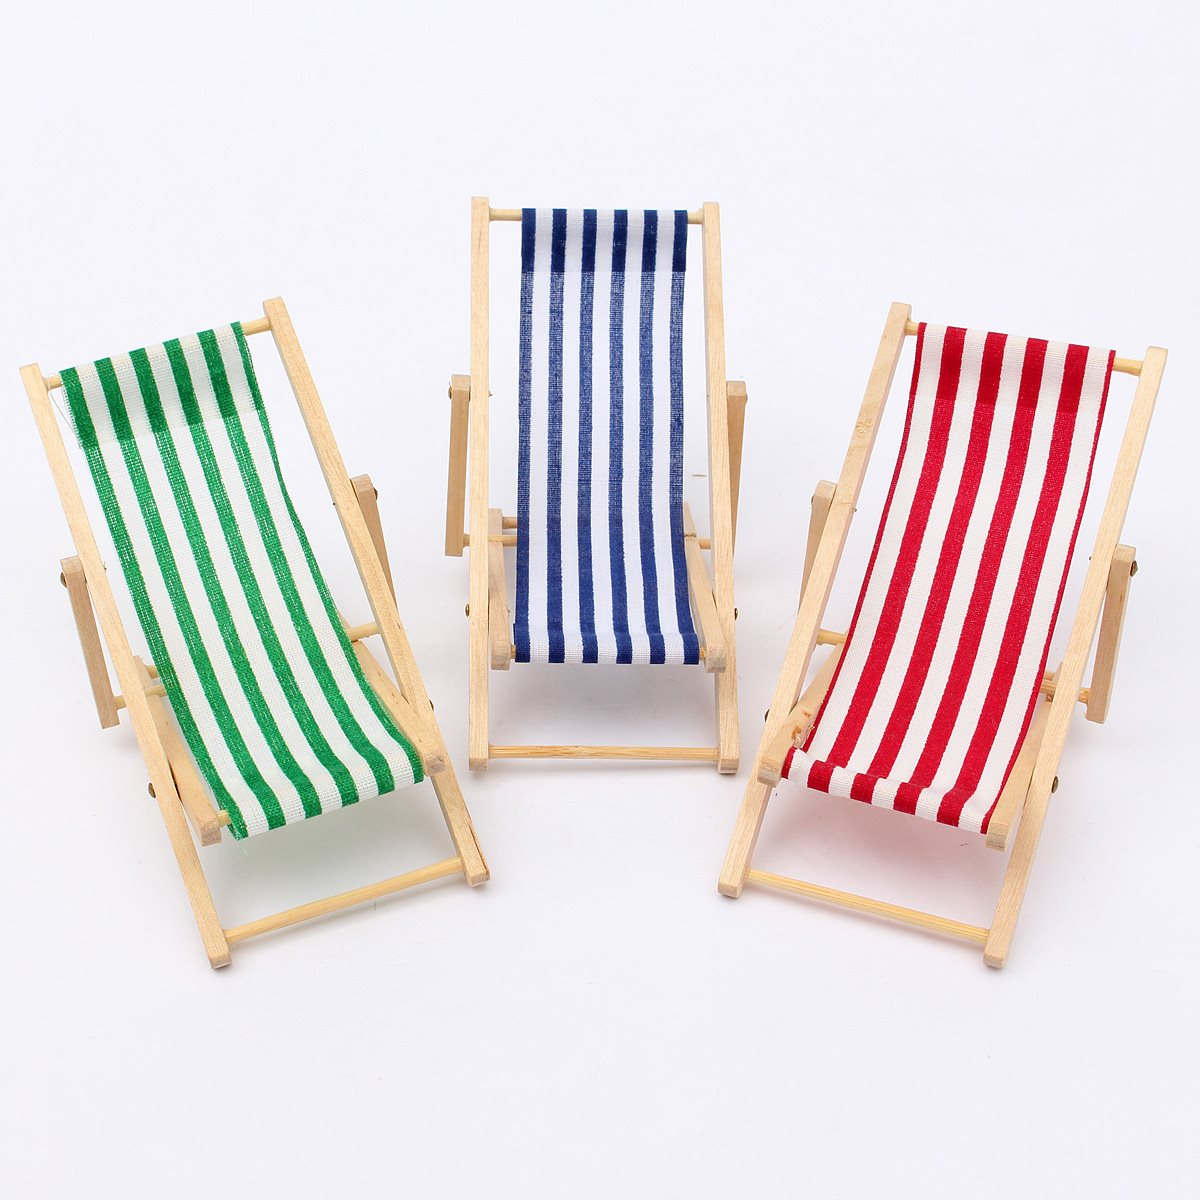 Cheap Lounge Chairs - 1 12 scale foldable wooden deckchair lounge beach chair for lovely miniature for barbie dolls